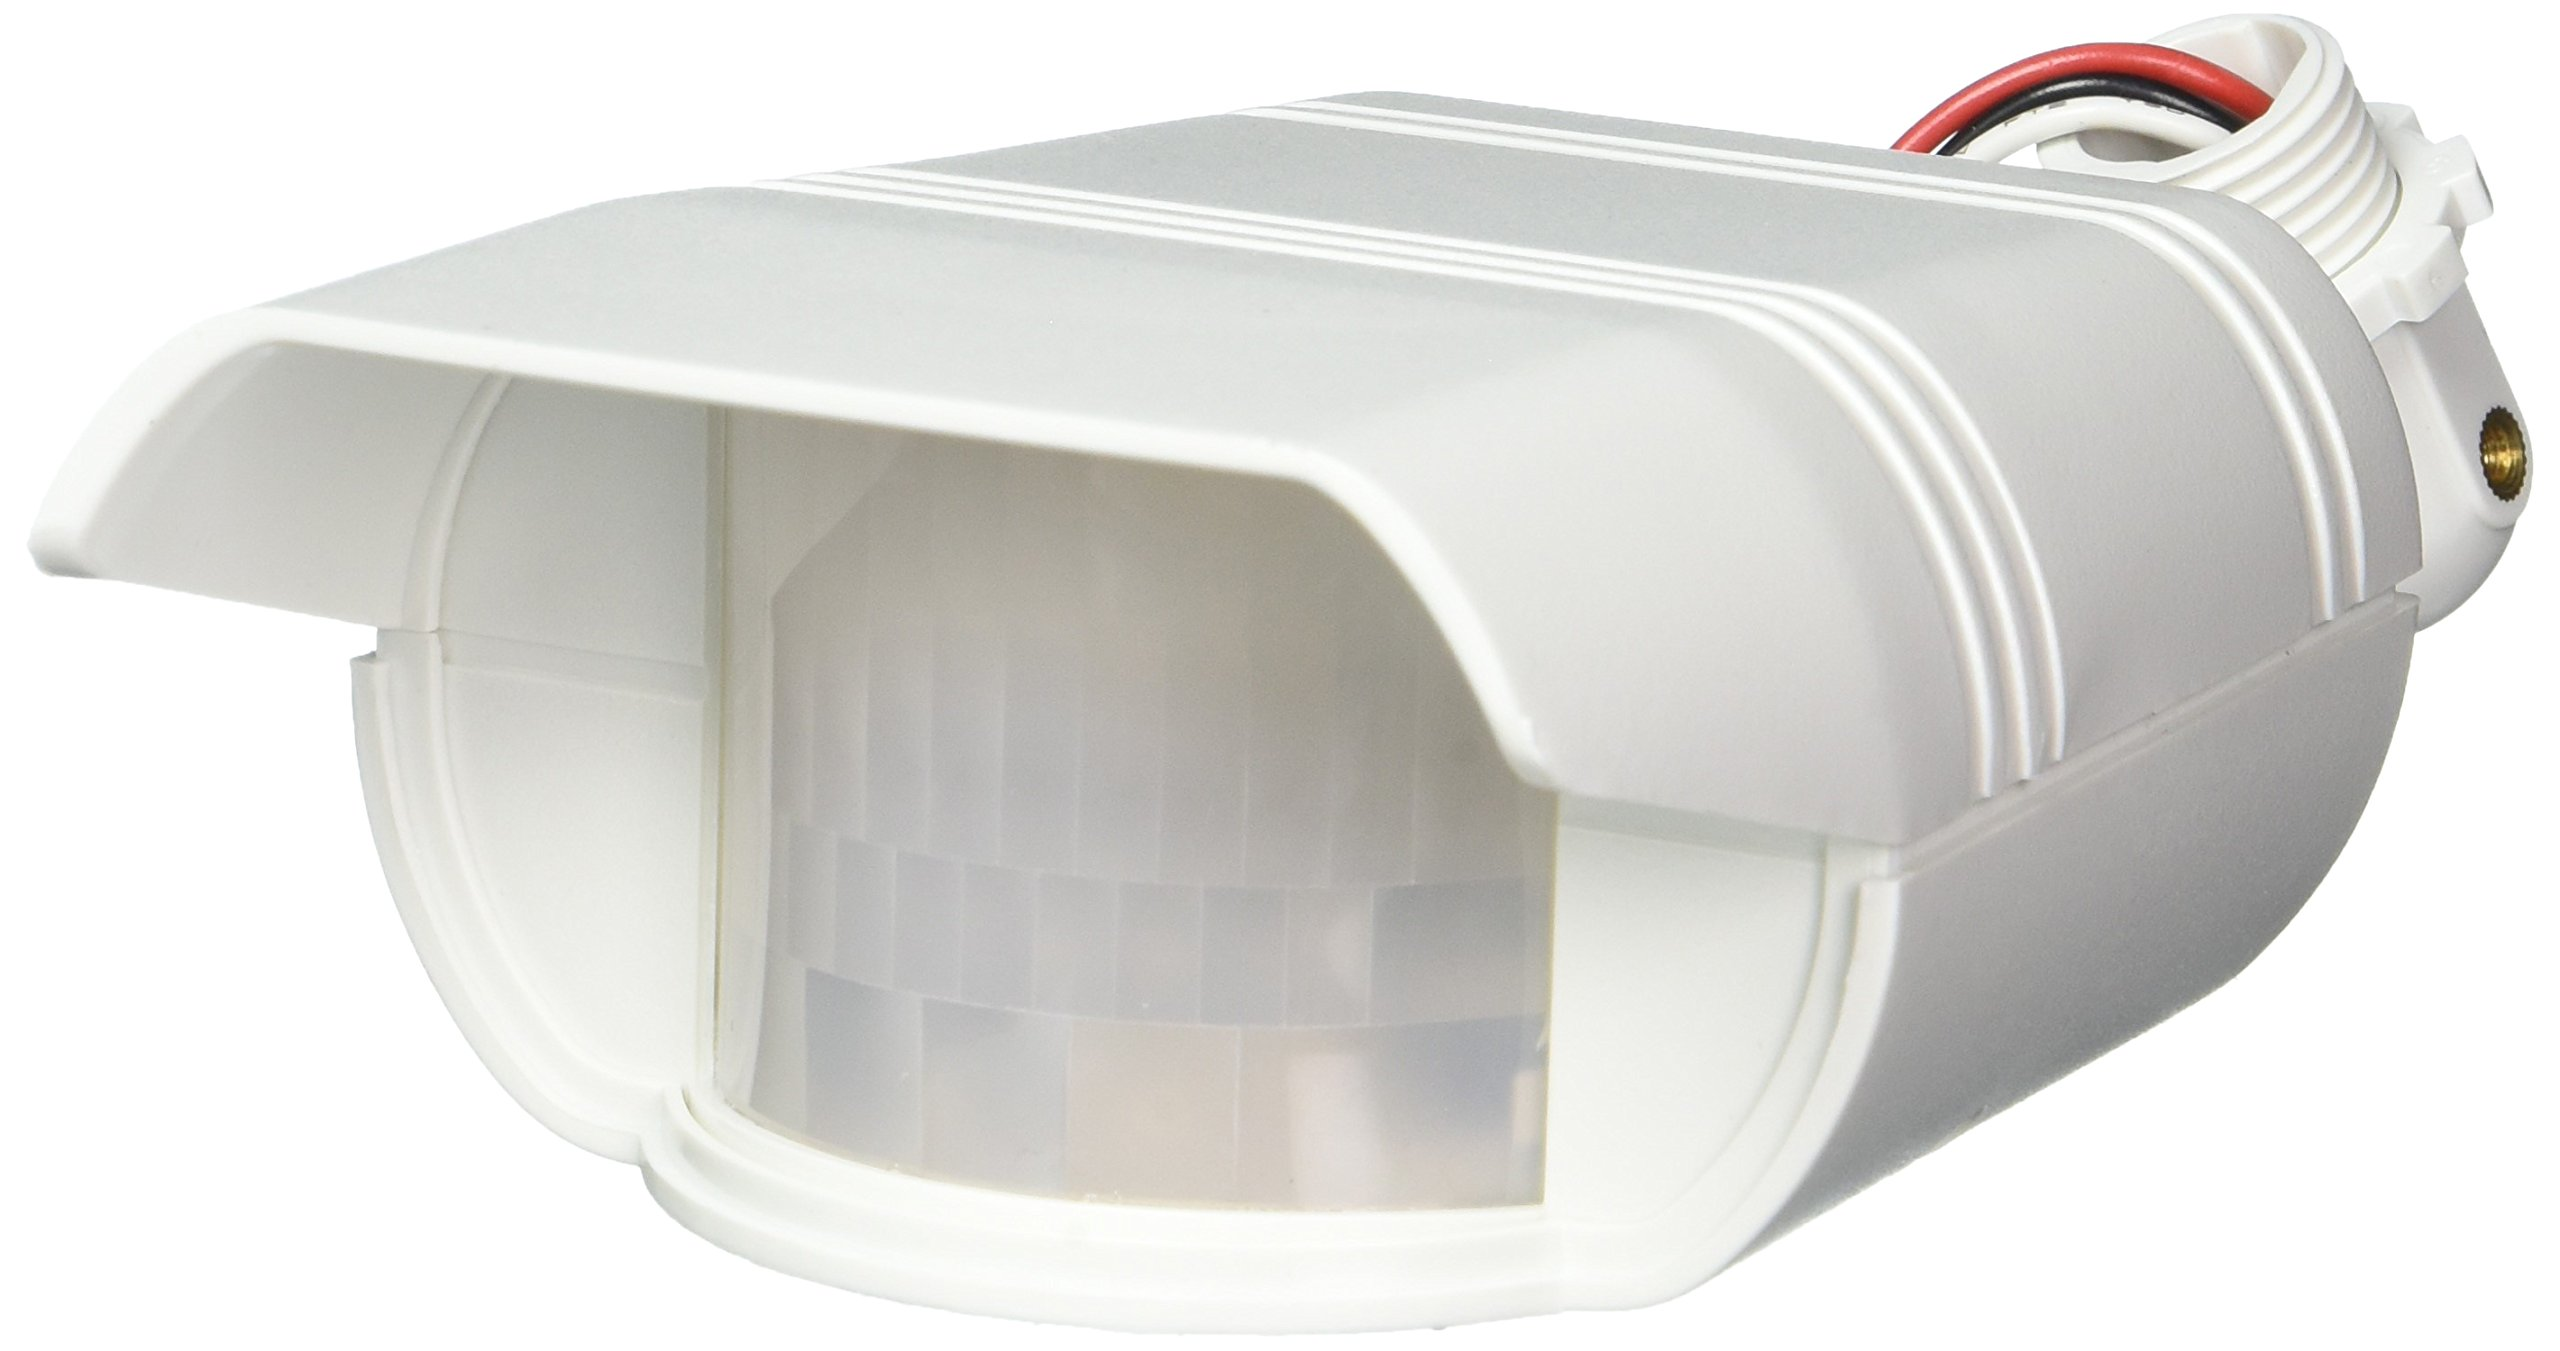 RAB Lighting GT500W Gotcha Outdoor Sensor with 110 Degrees View Detection, Polycarbonate, 500W Power, 120V, White